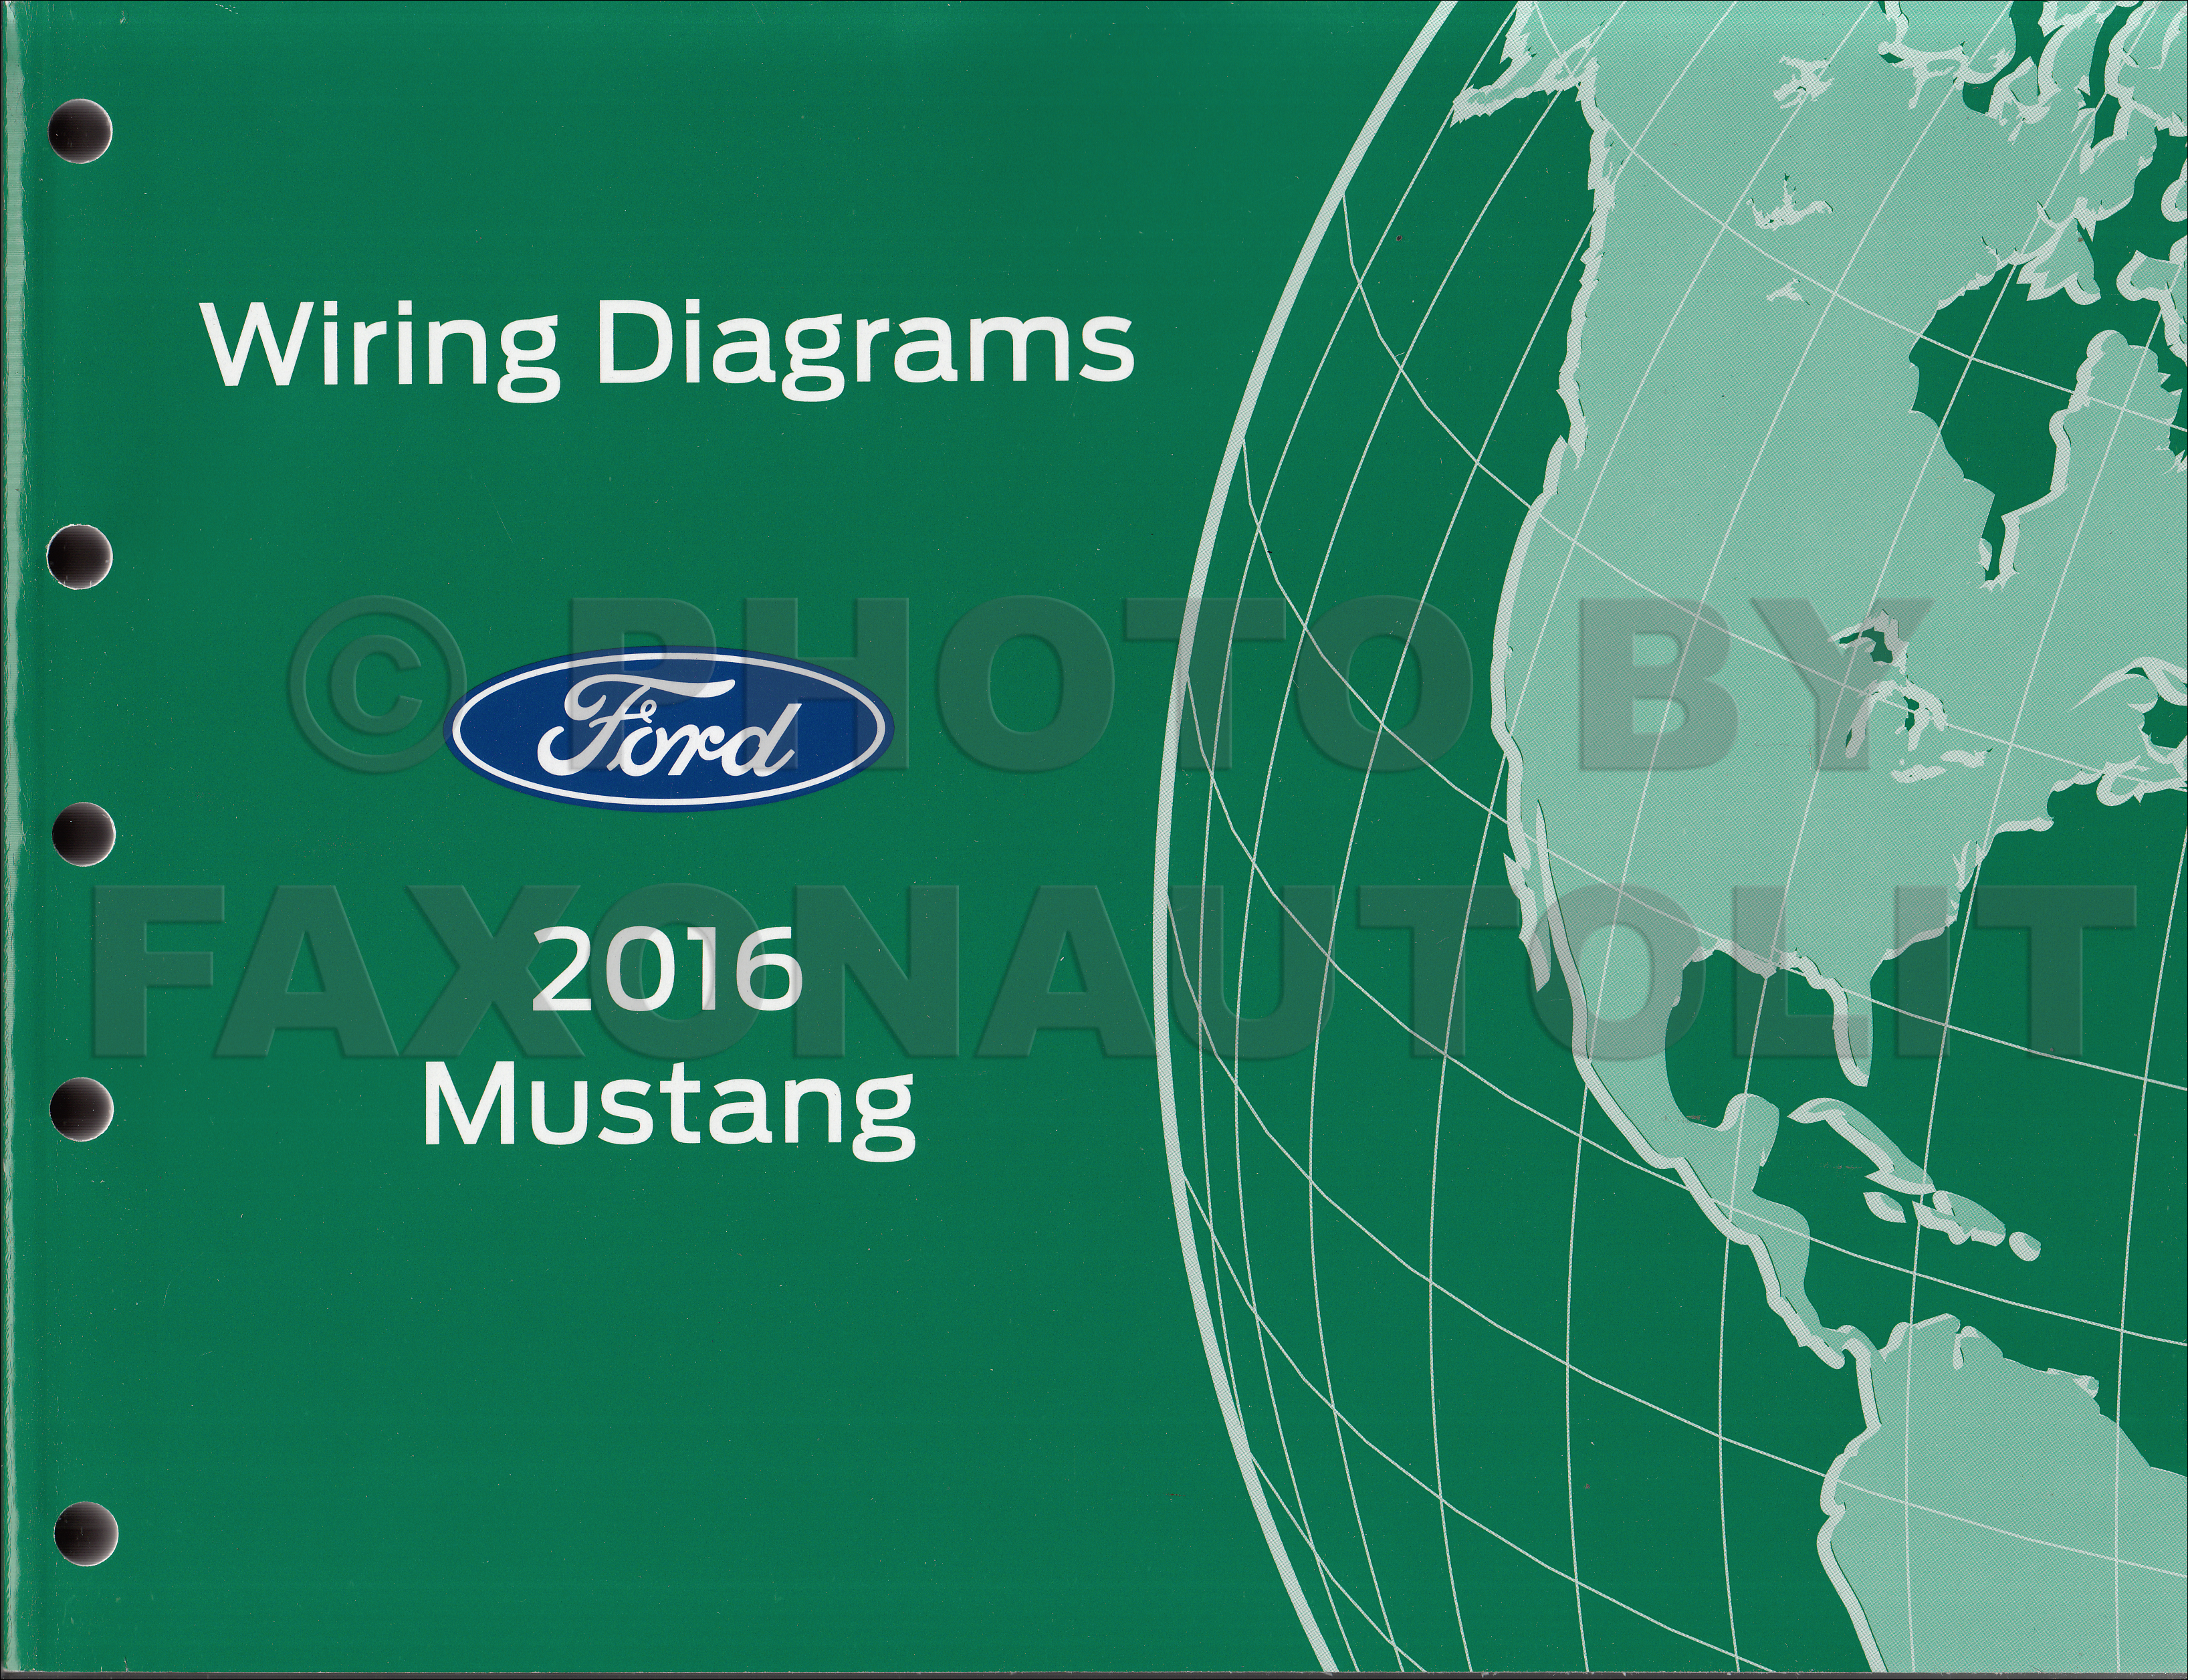 2015 Ford Mustang Wiring Diagram Archive Of Automotive 2012 Navistar Engine 2016 Manual Original Rh Faxonautoliterature Com